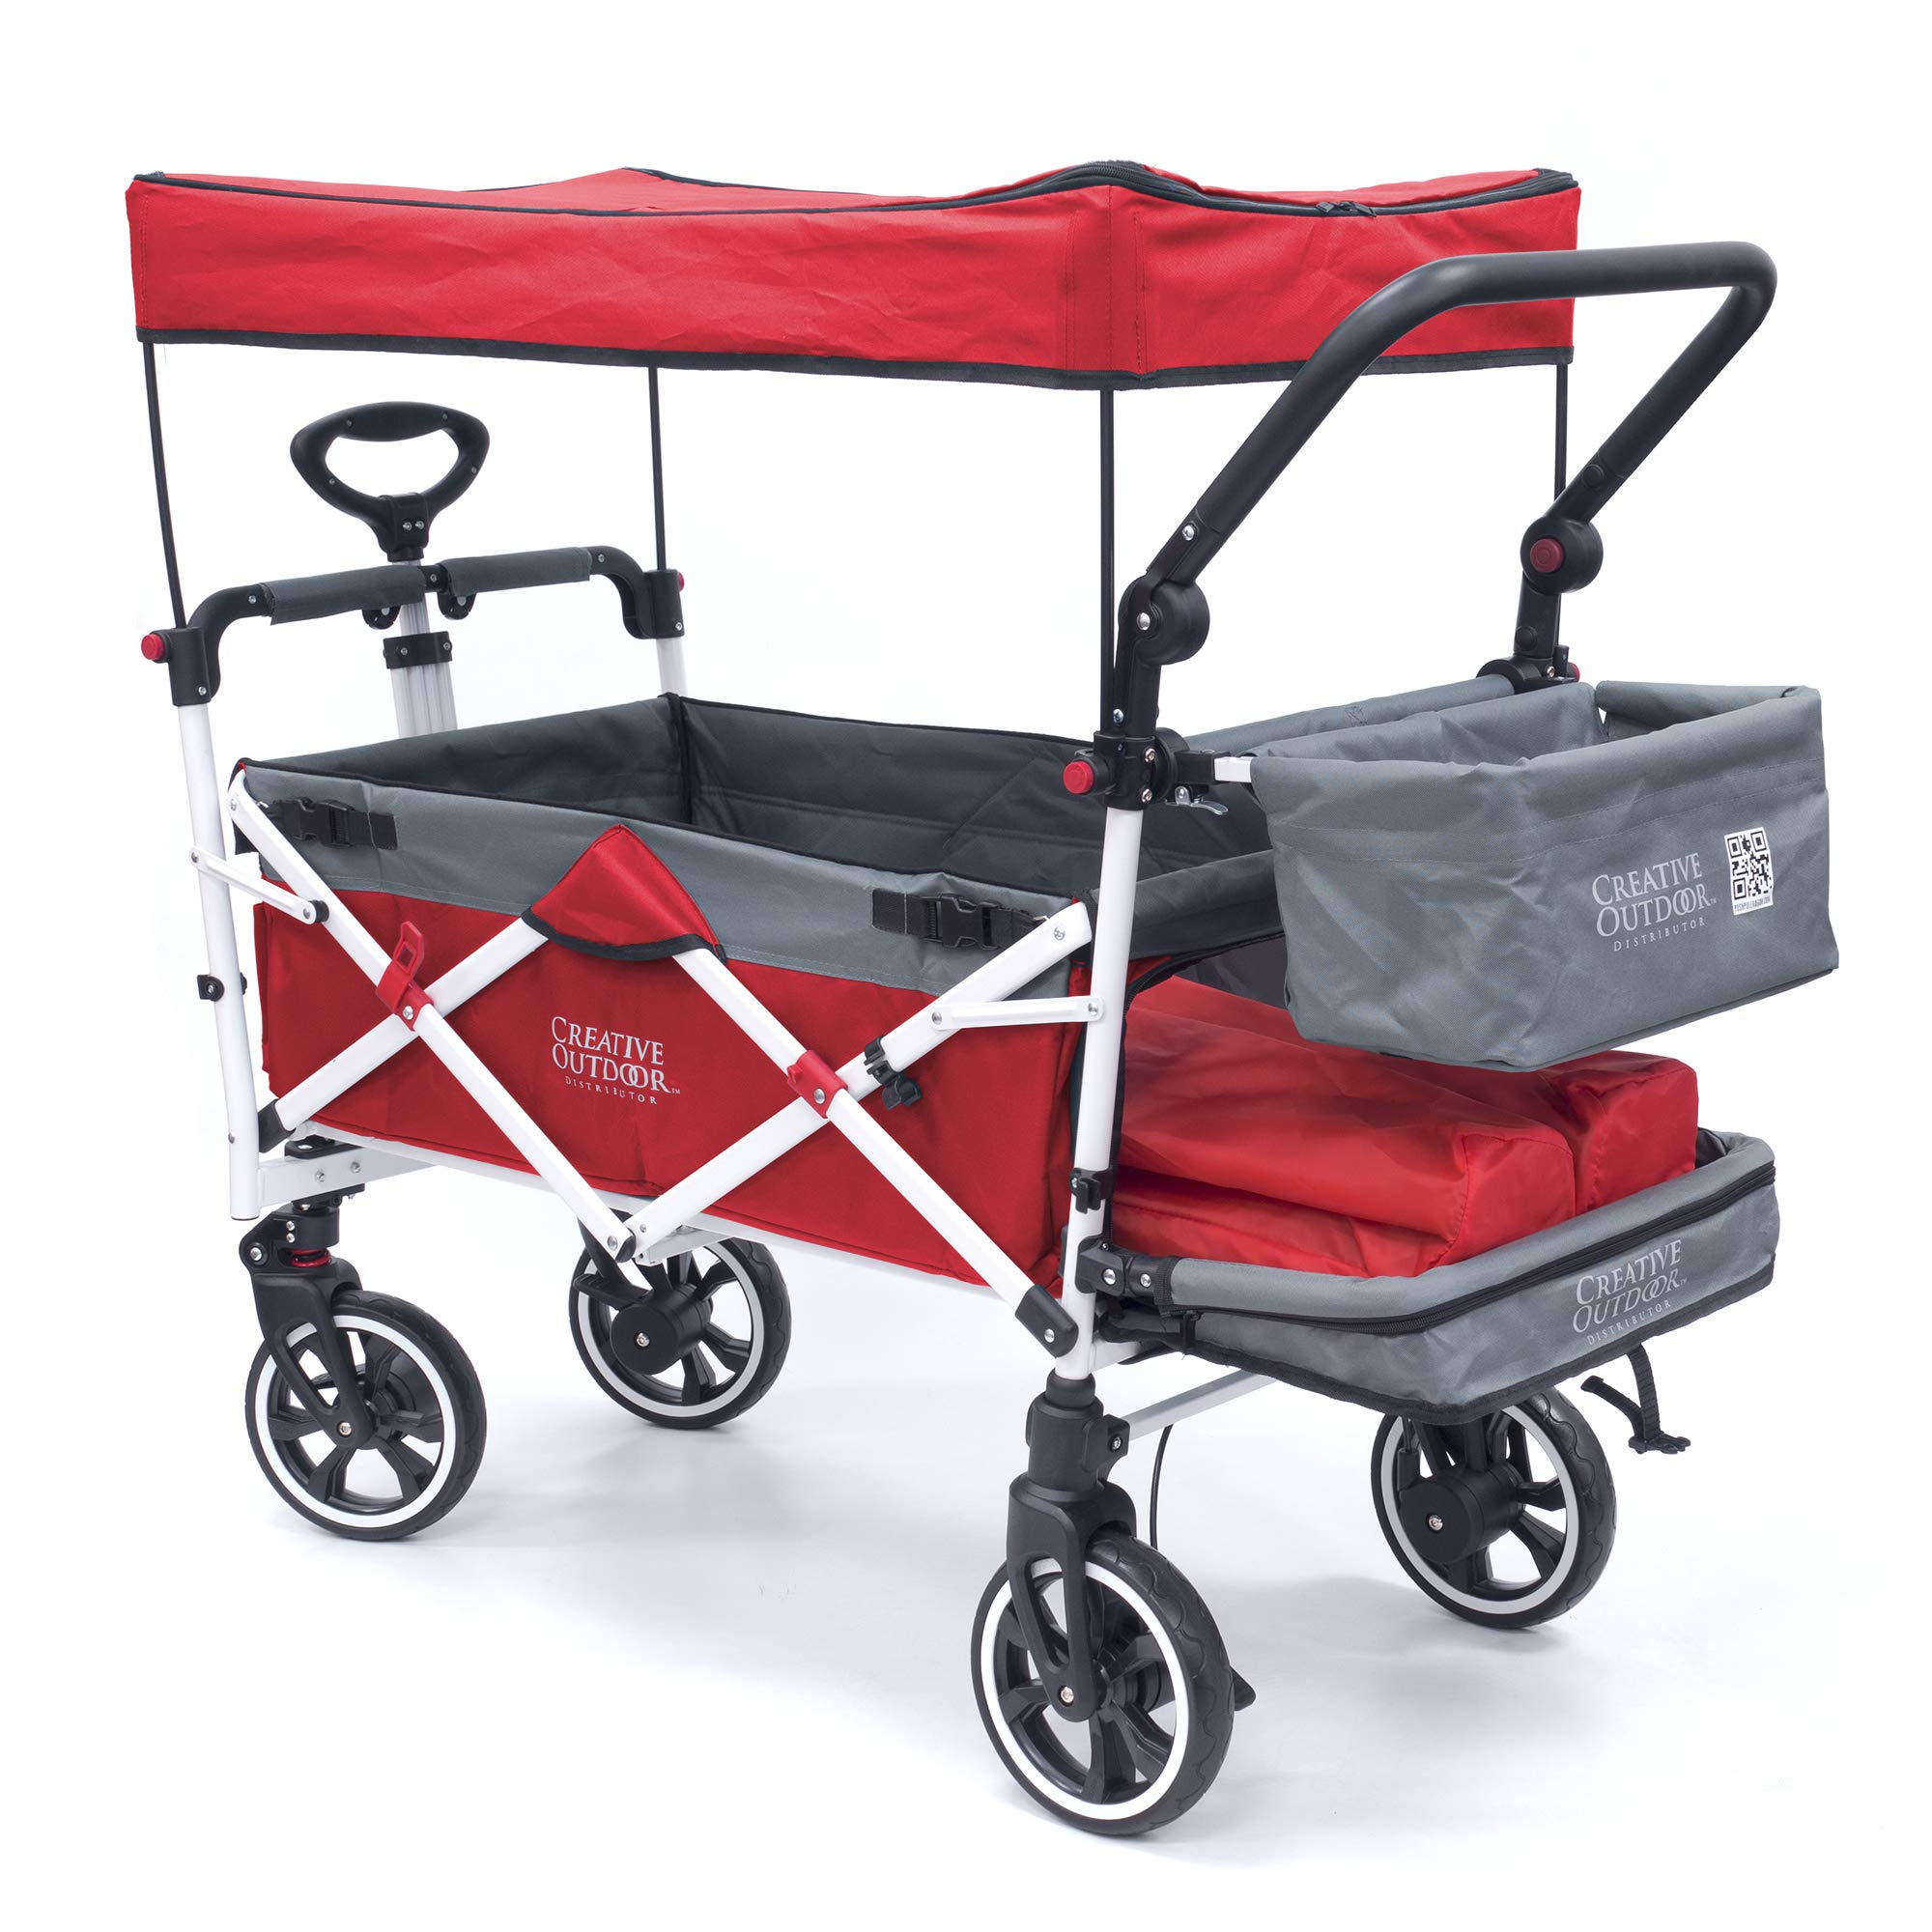 Creative Outdoor Push Pull Collapsible Folding Wagon Stroller Cart for Kids | Titanium Series | Beach Park Garden & Tailgate (Red)